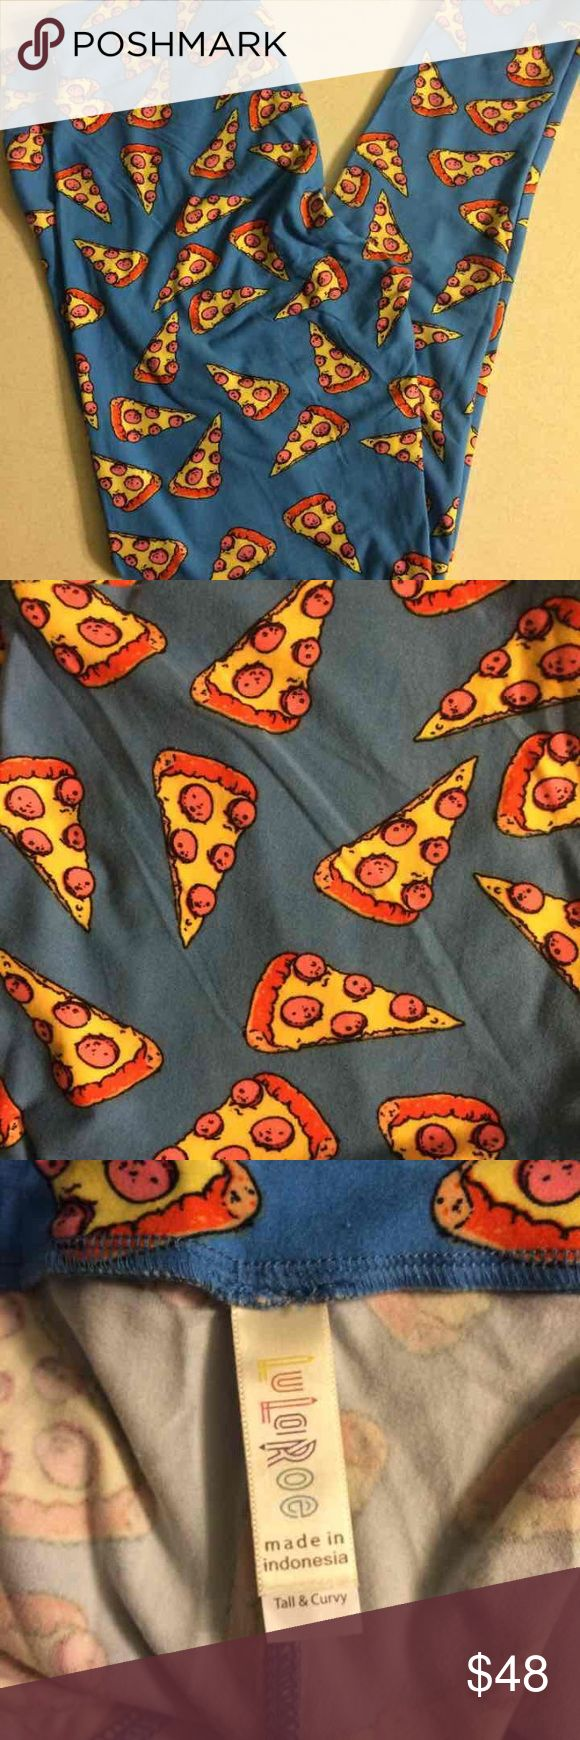 LuLaRoe leggings TC pizza rare unicorn Brand new, never worn LuLaRoe pizza rare unicorn print leggings; tall and curvy, made in Indonesia. Cross posted ** LuLaRoe Pants